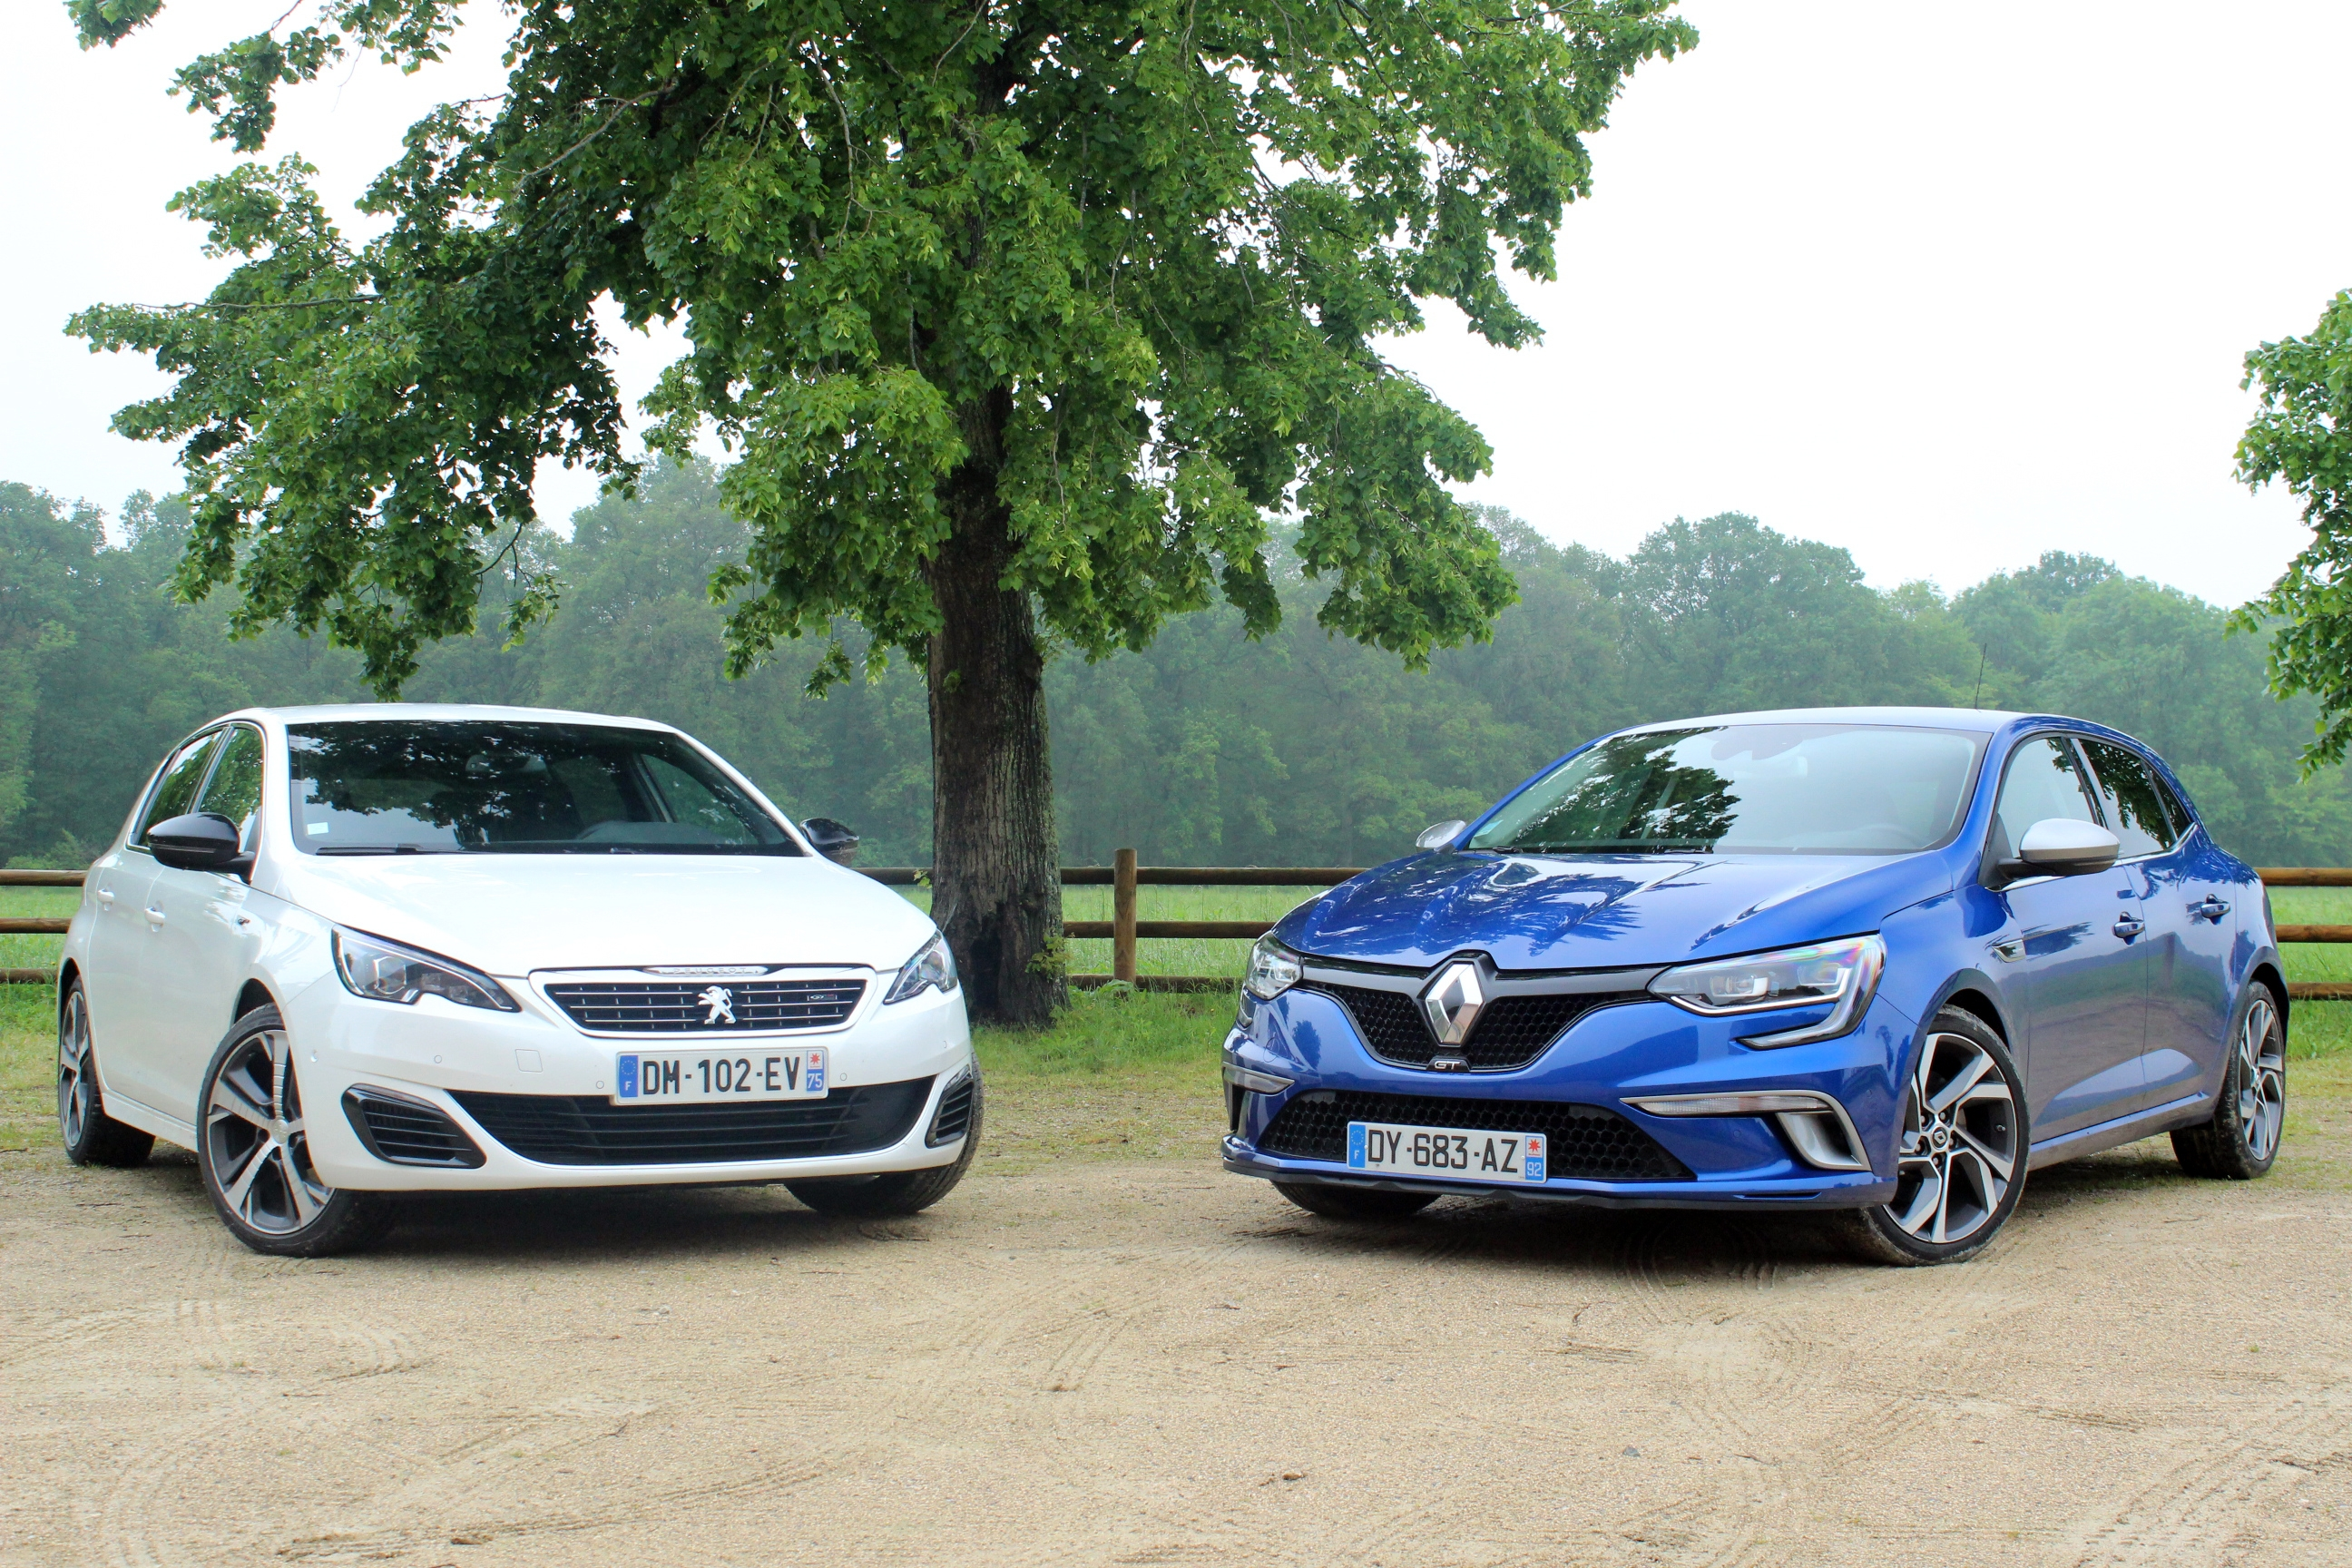 comparatif vid o peugeot 308 gt vs renault m gane gt derby attendu. Black Bedroom Furniture Sets. Home Design Ideas